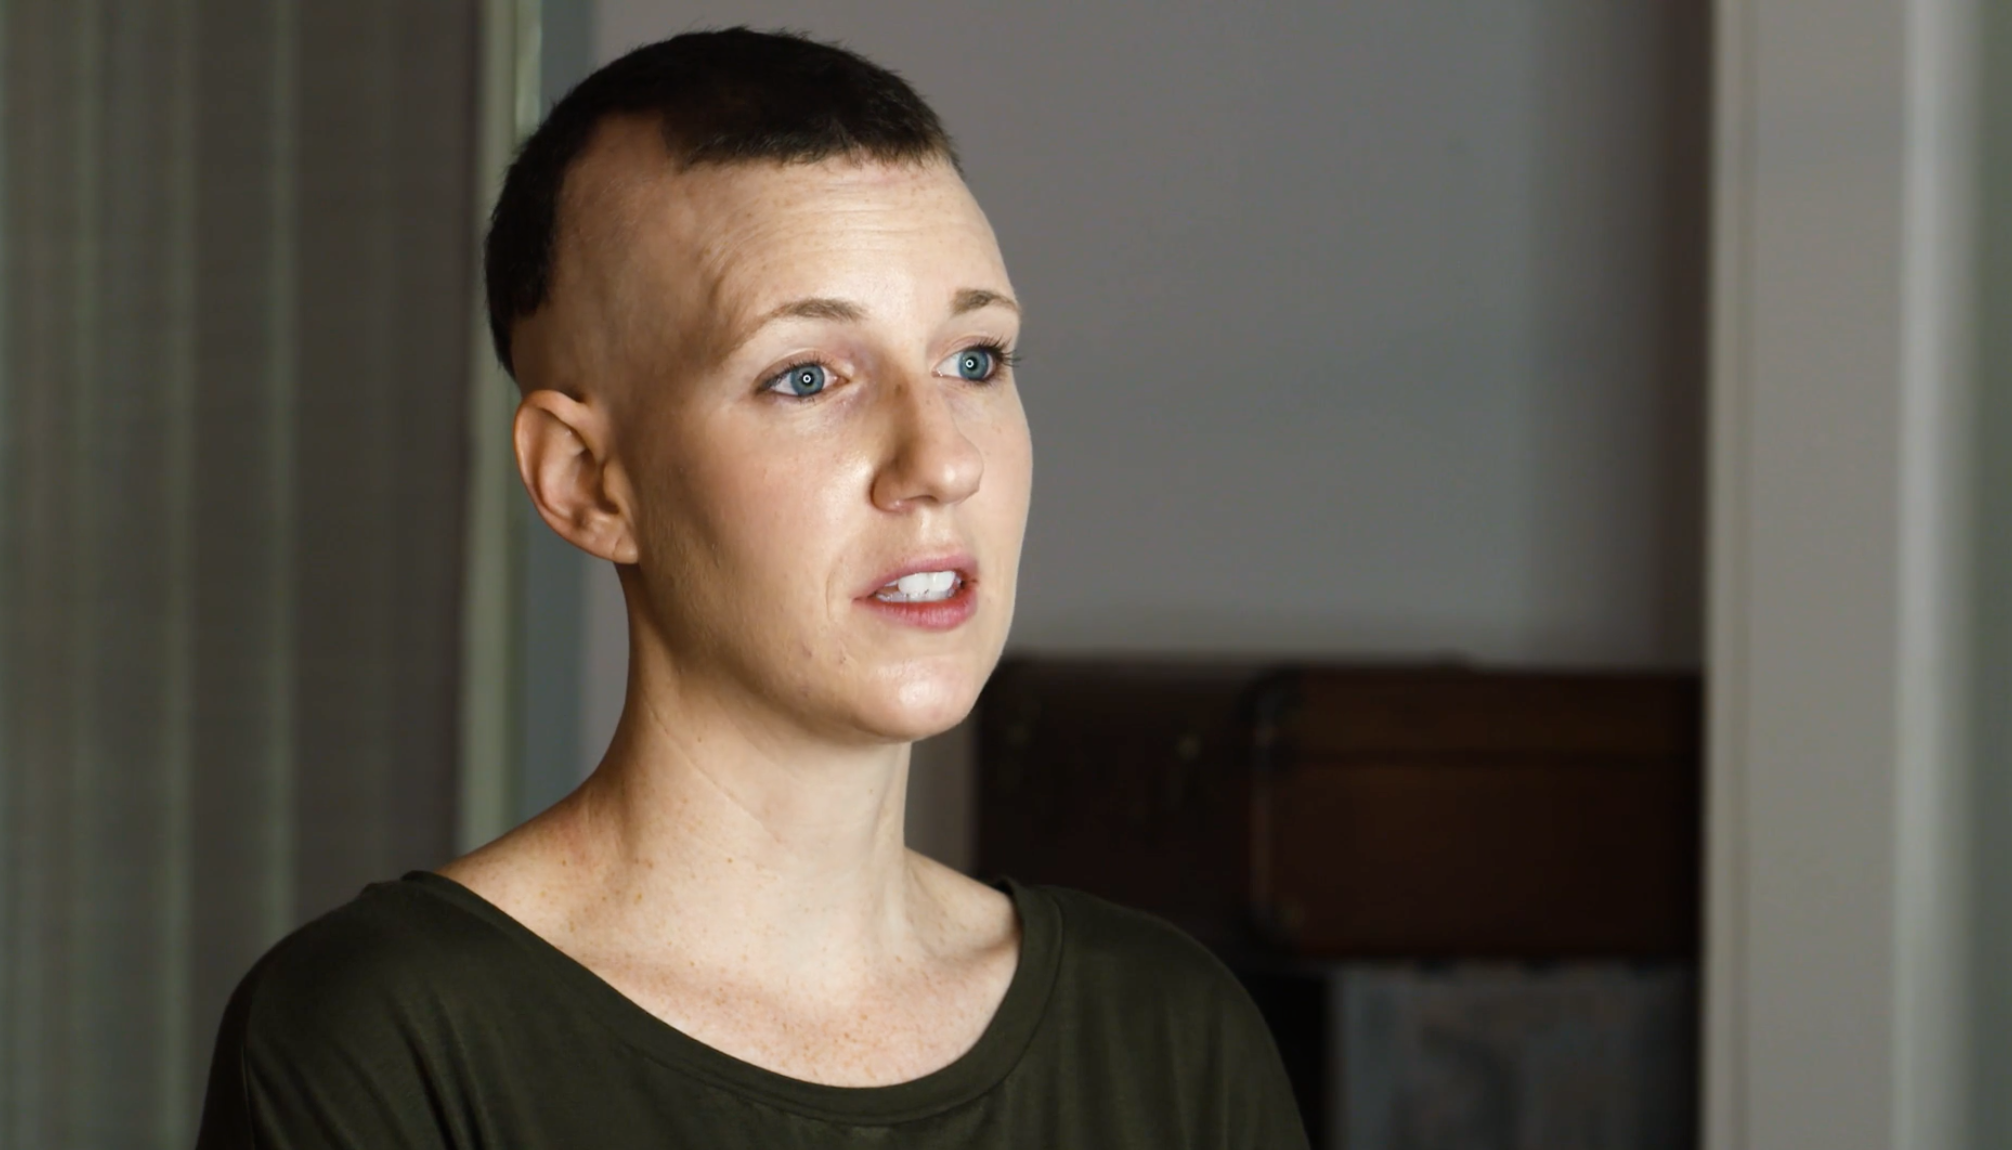 Shannon, living with Alopecia Areata